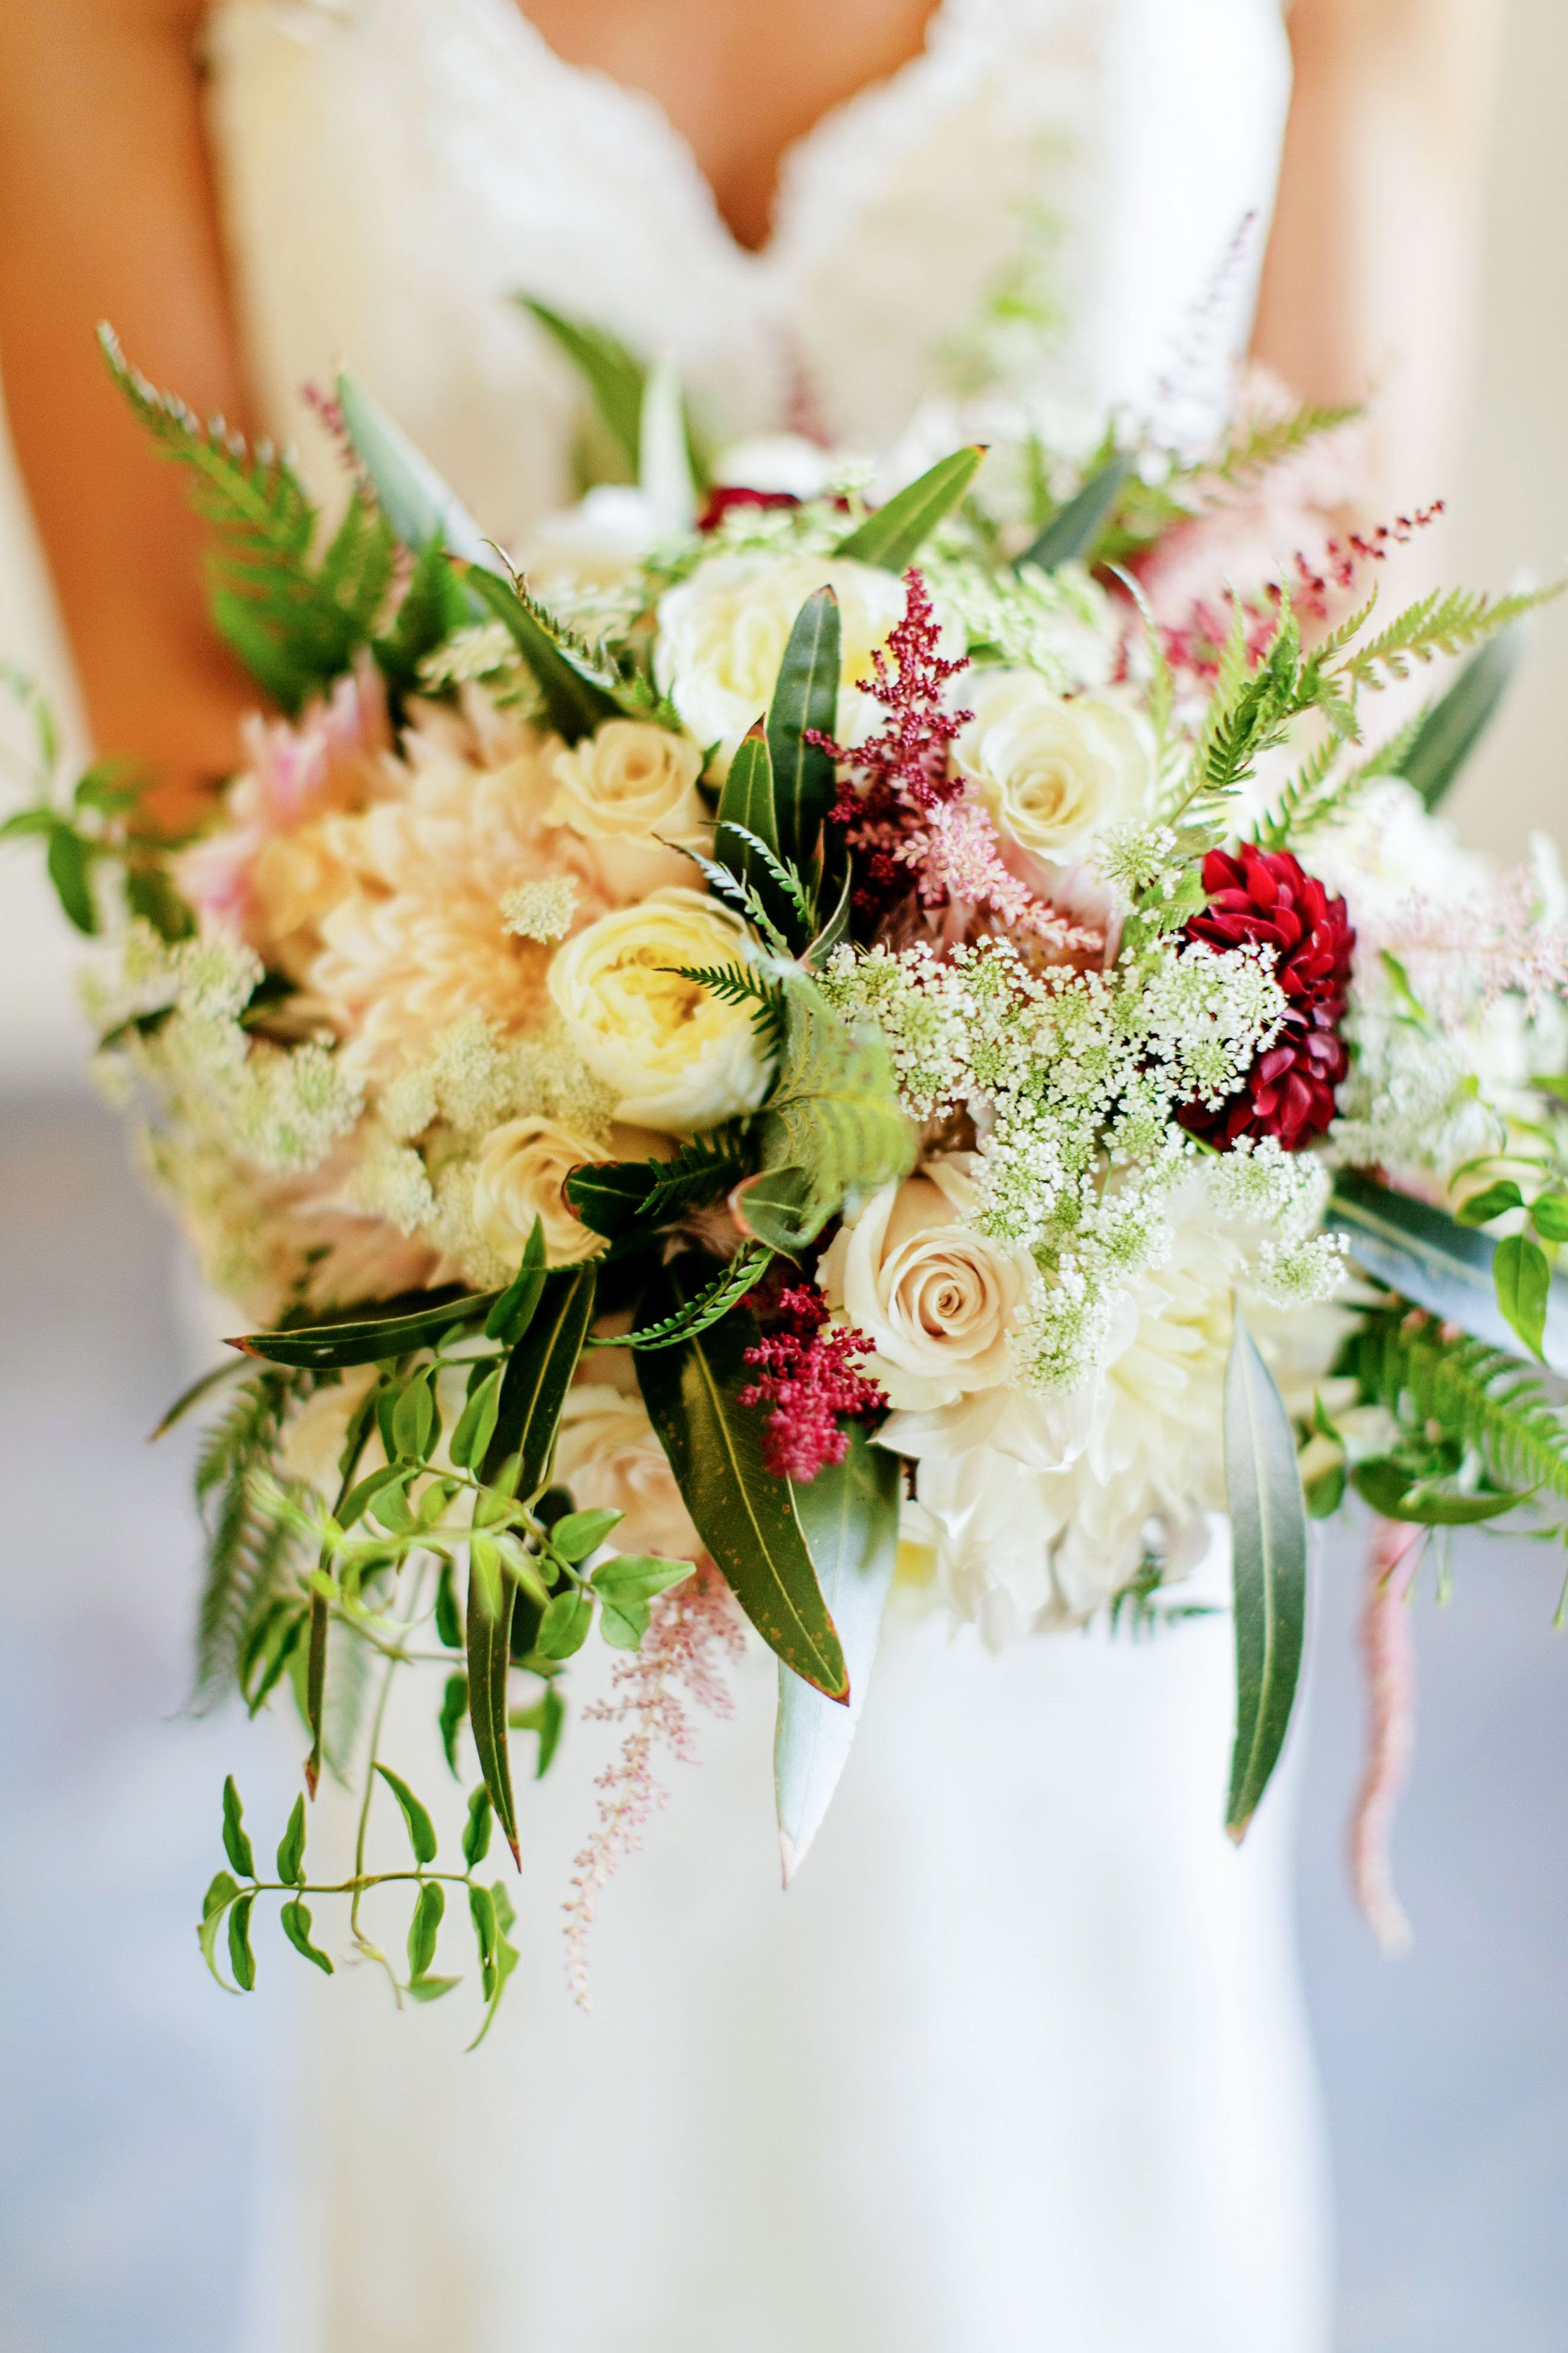 Pretty neutral florals with amazing textures View the full wedding